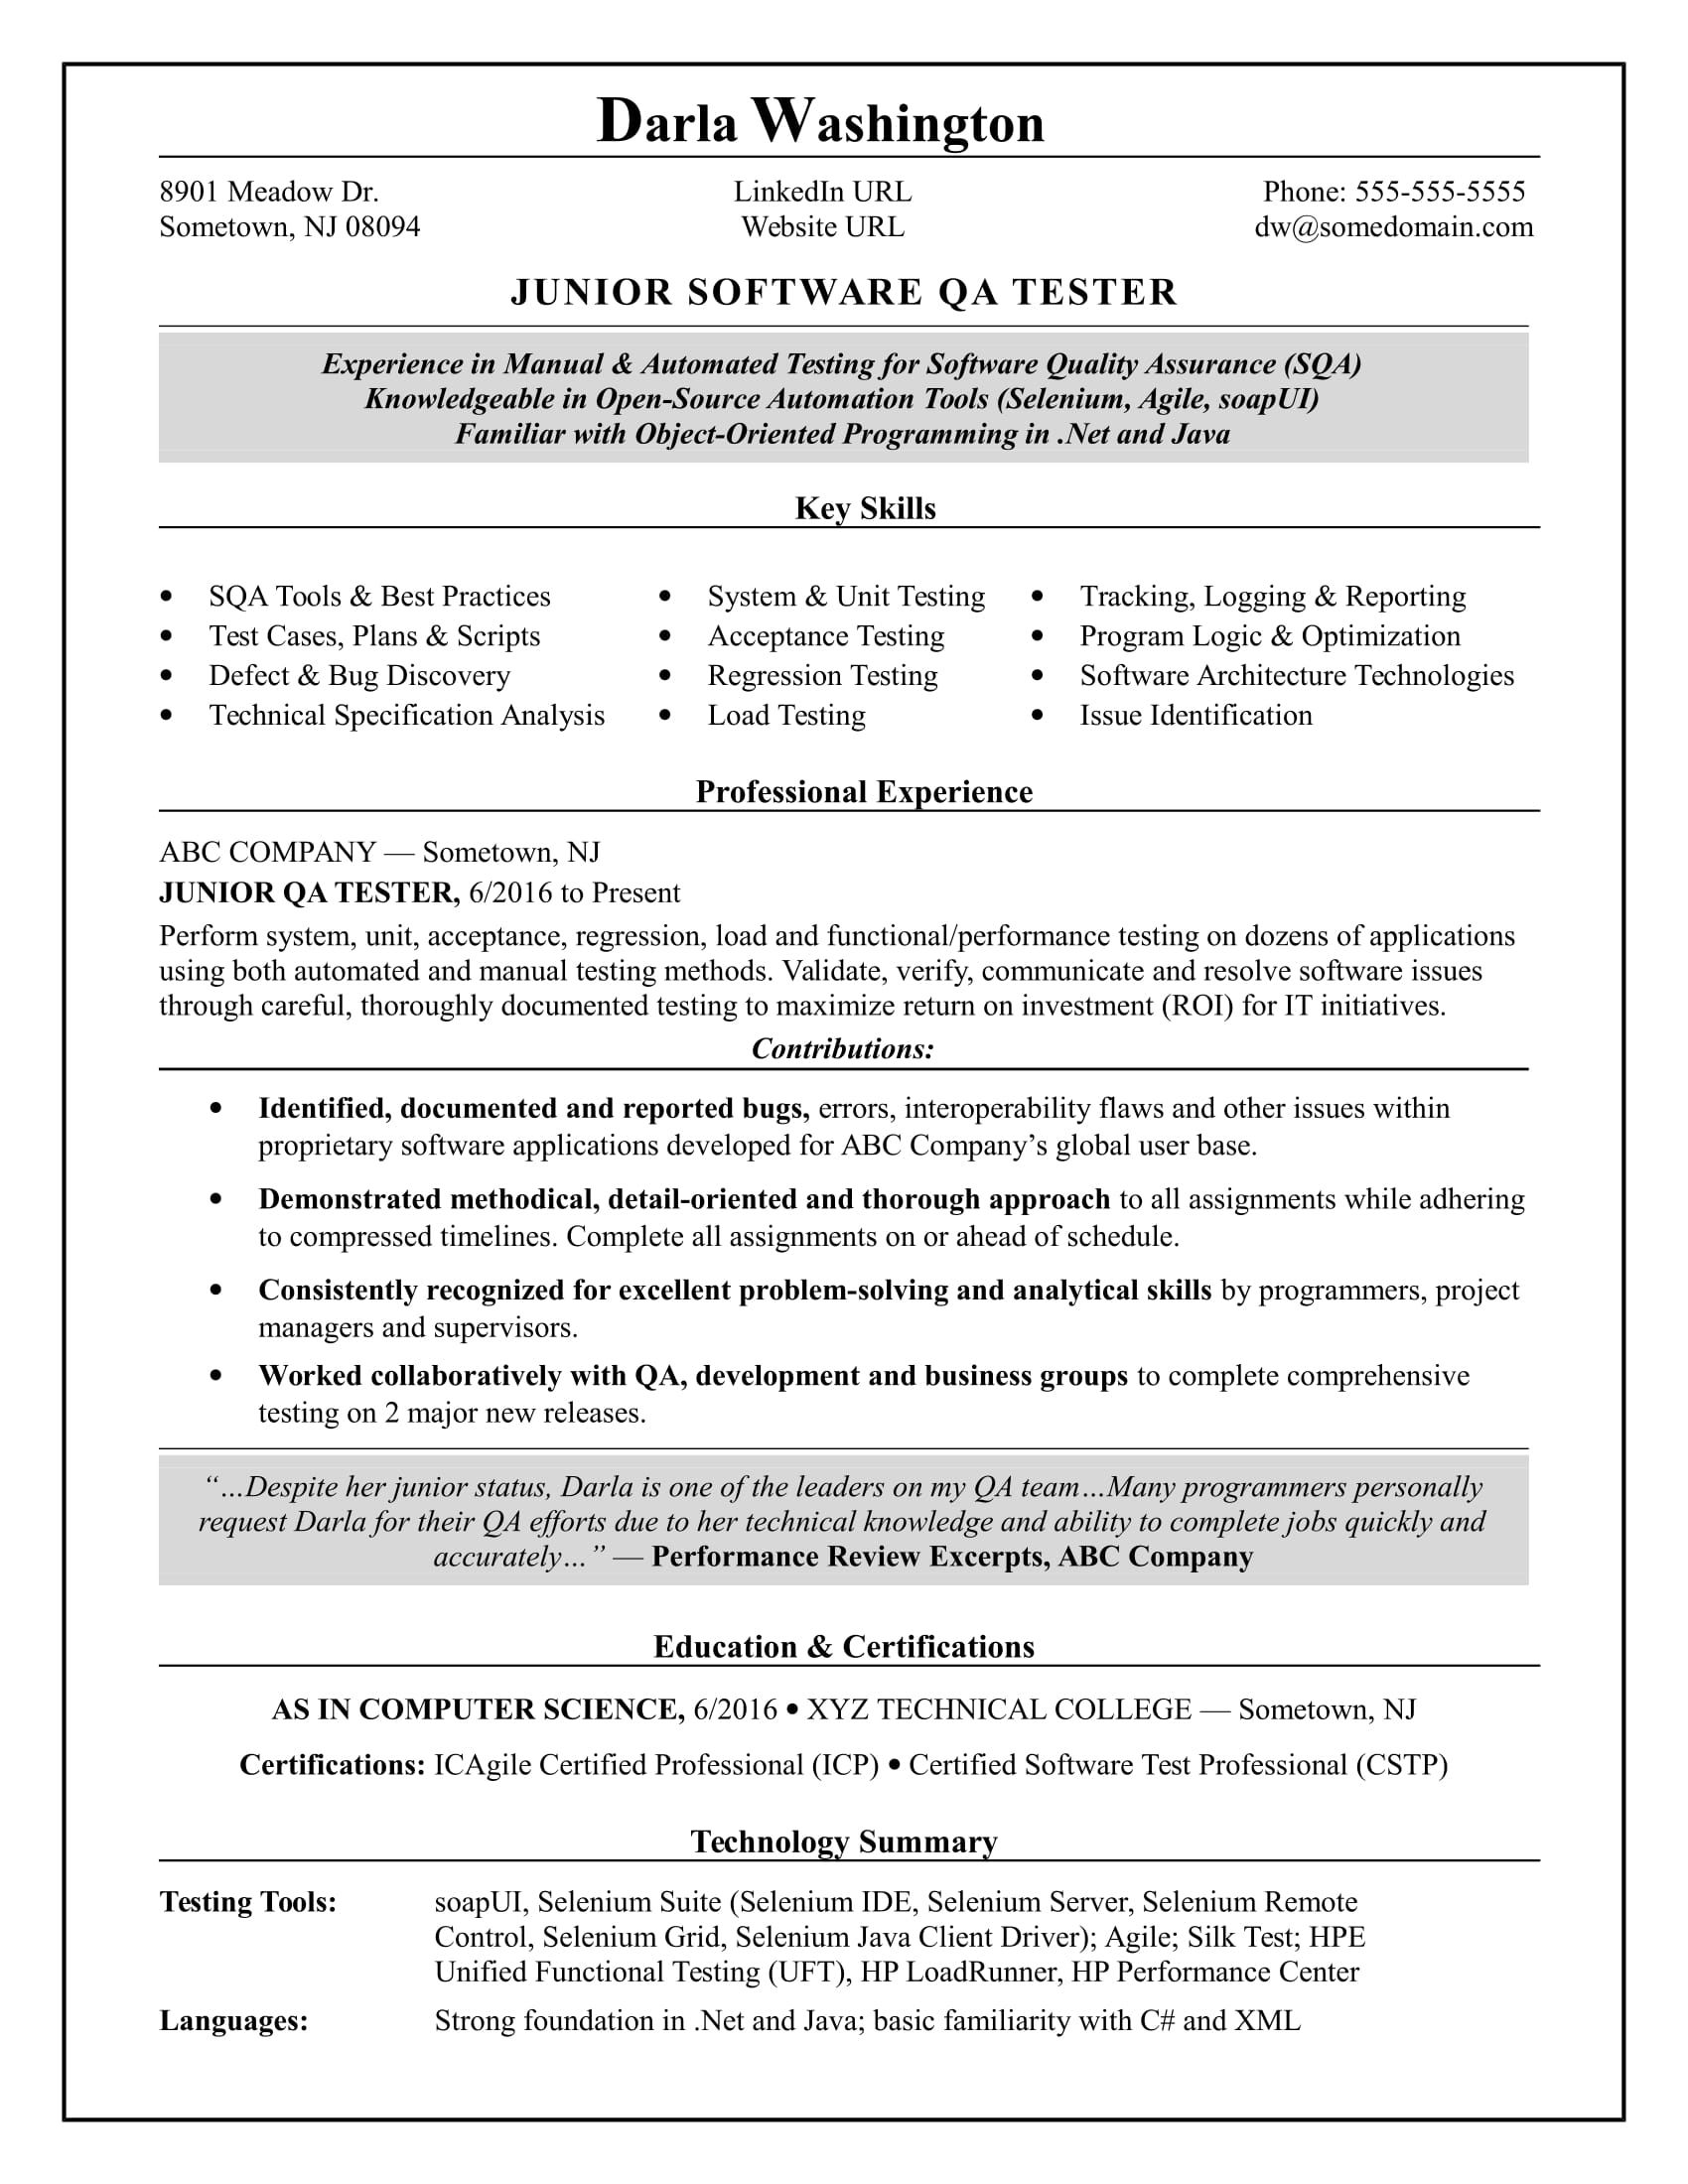 S le Resume Qa Software Tester Entry Level on practice writing in script